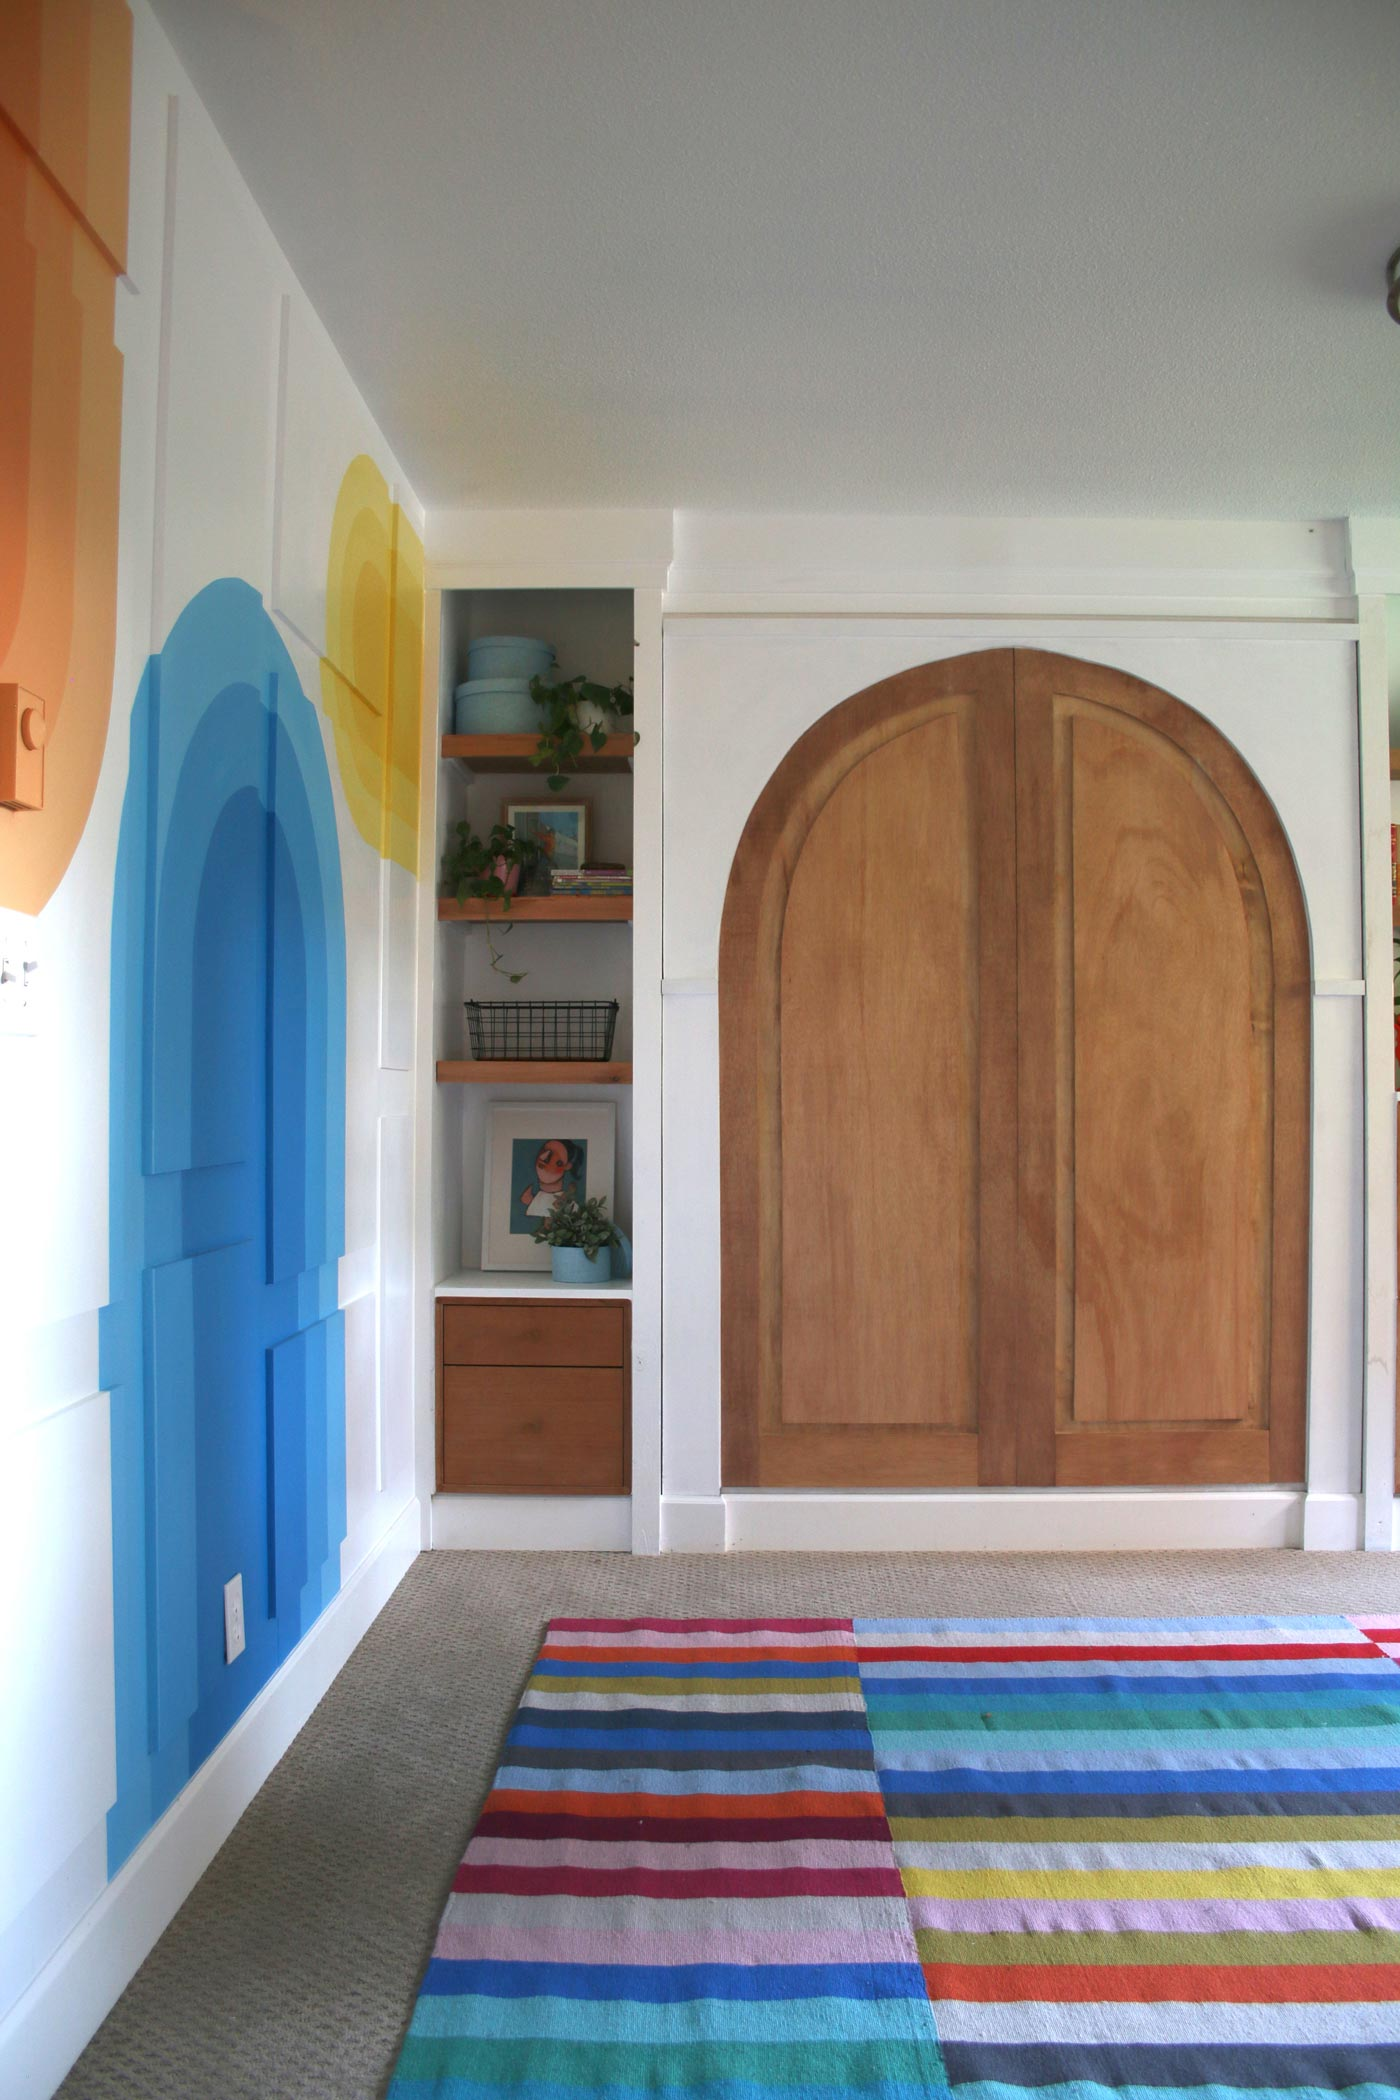 feature-wall-with-painted-arches-and-murphy-bed-with-arched-doors